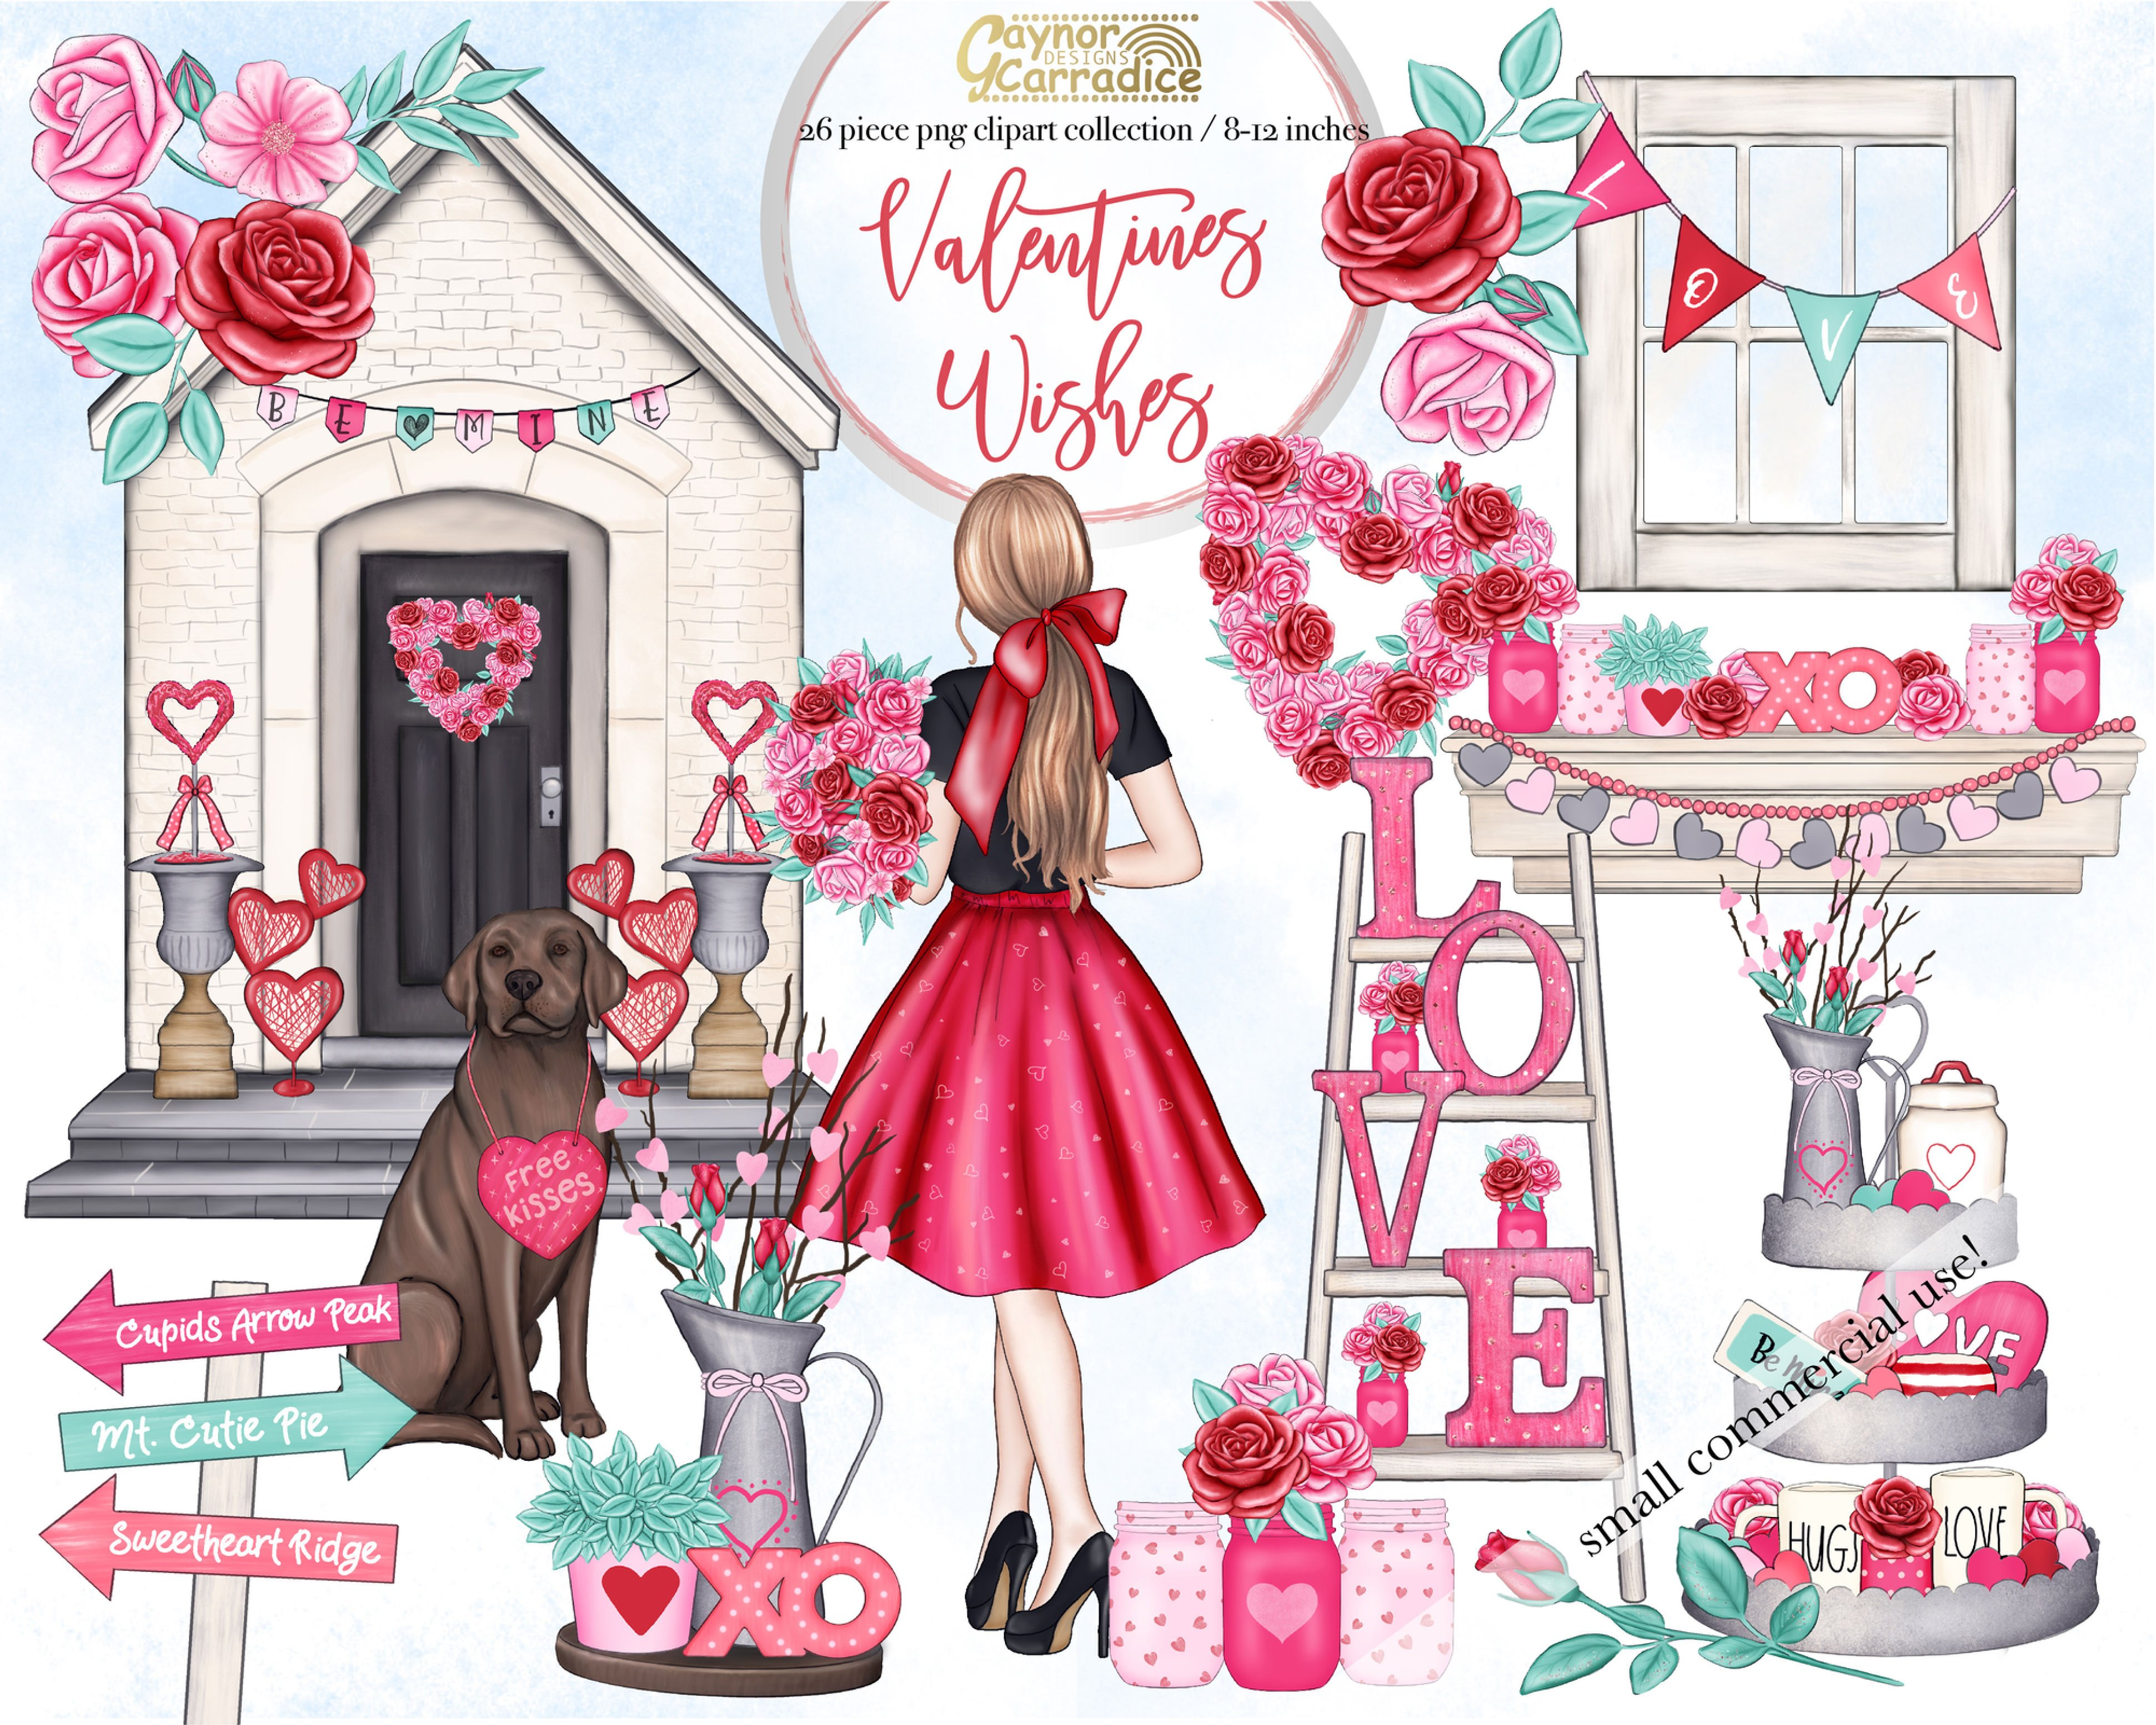 Valentines wishes watercolor clipart.